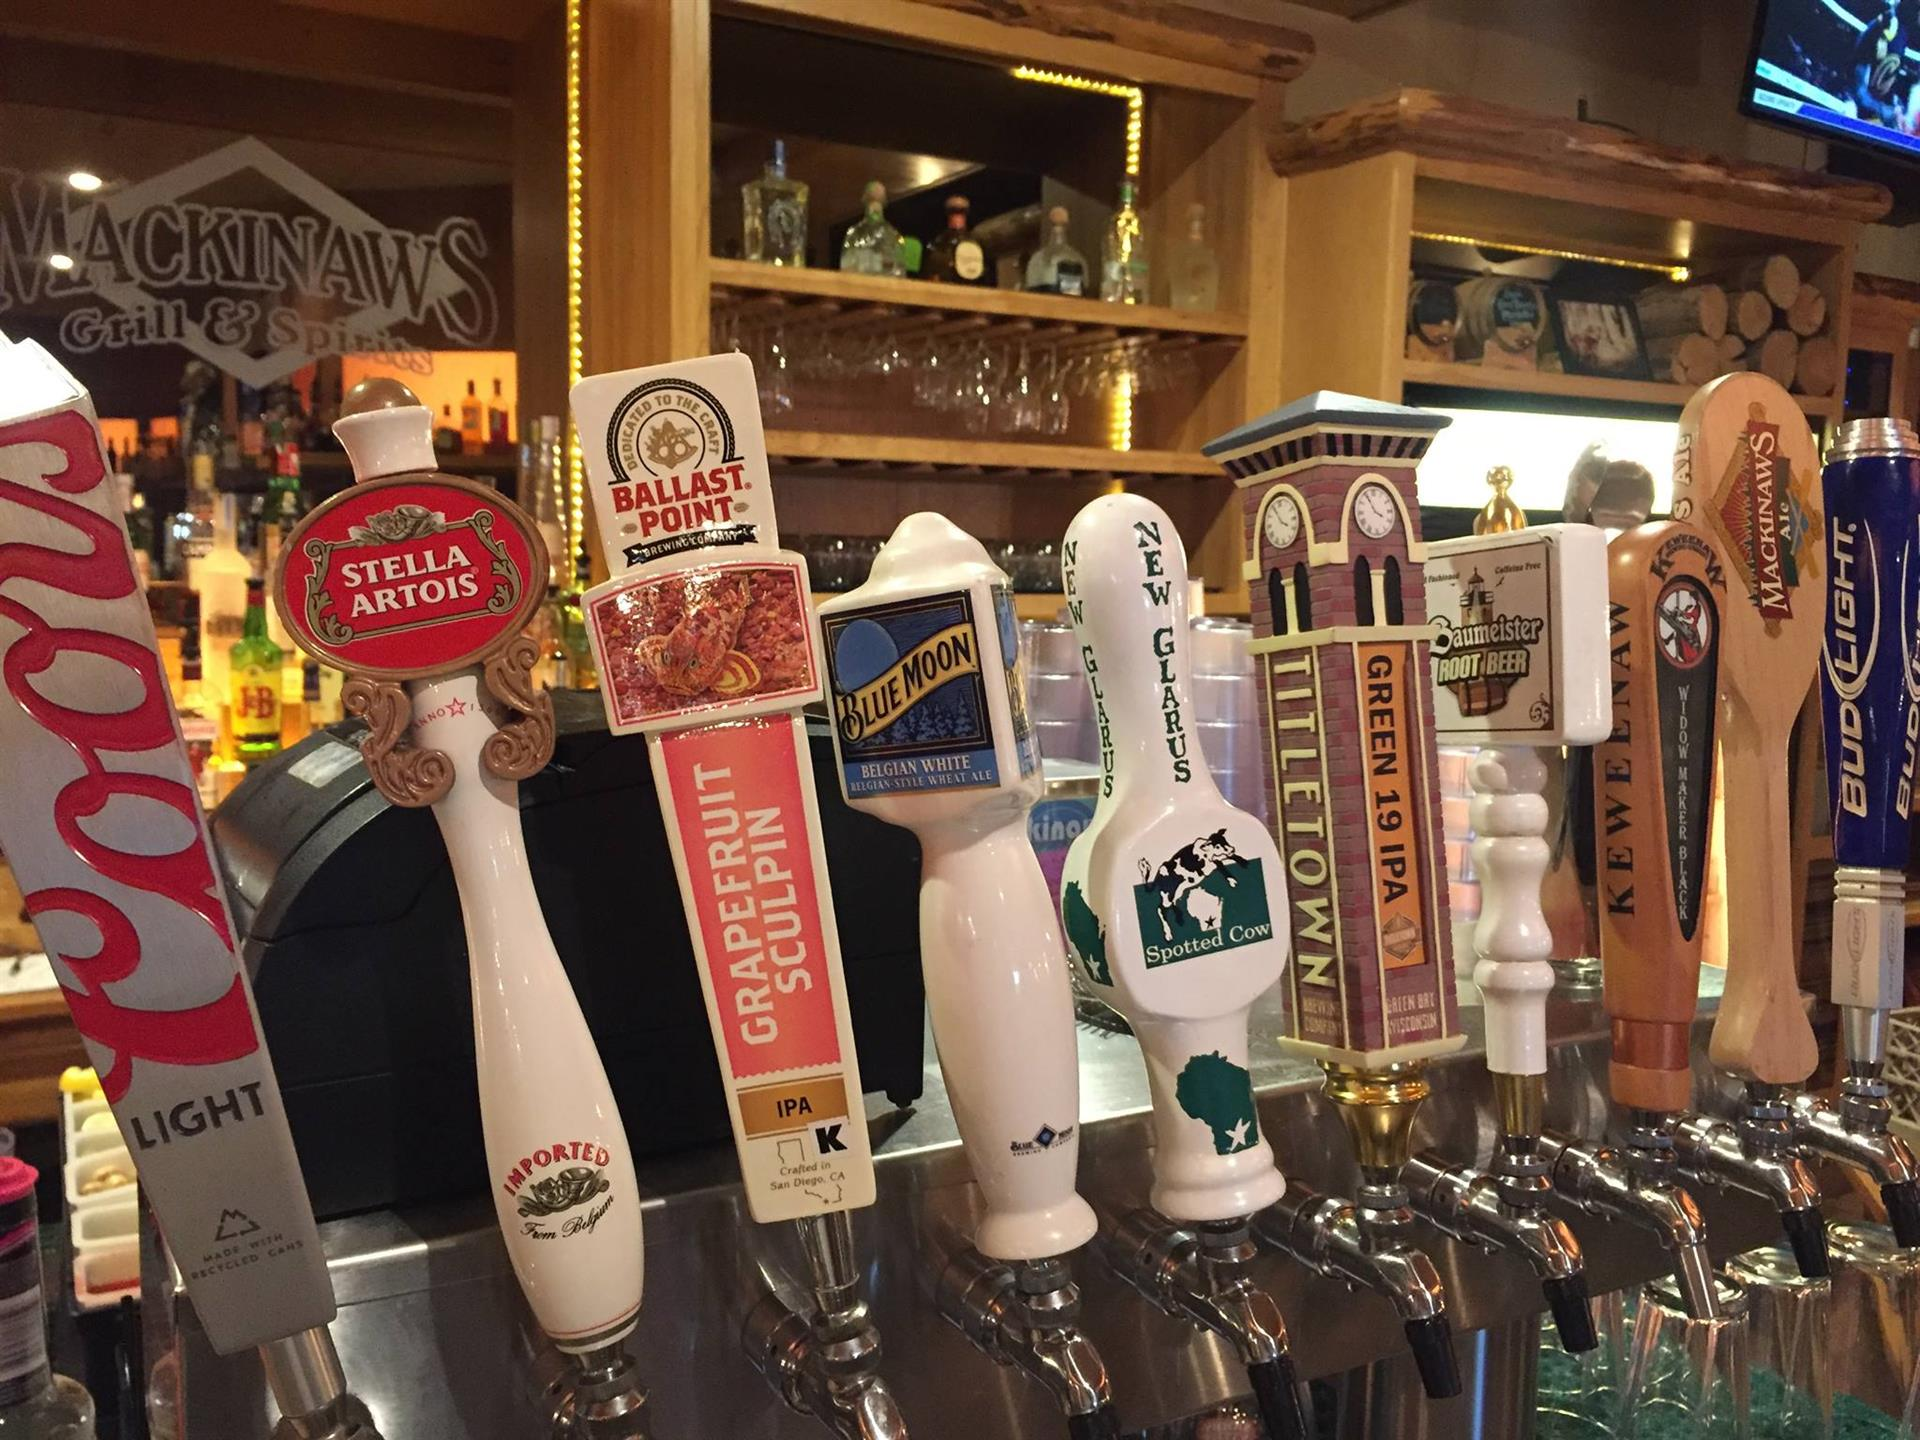 a variety of beers on tap